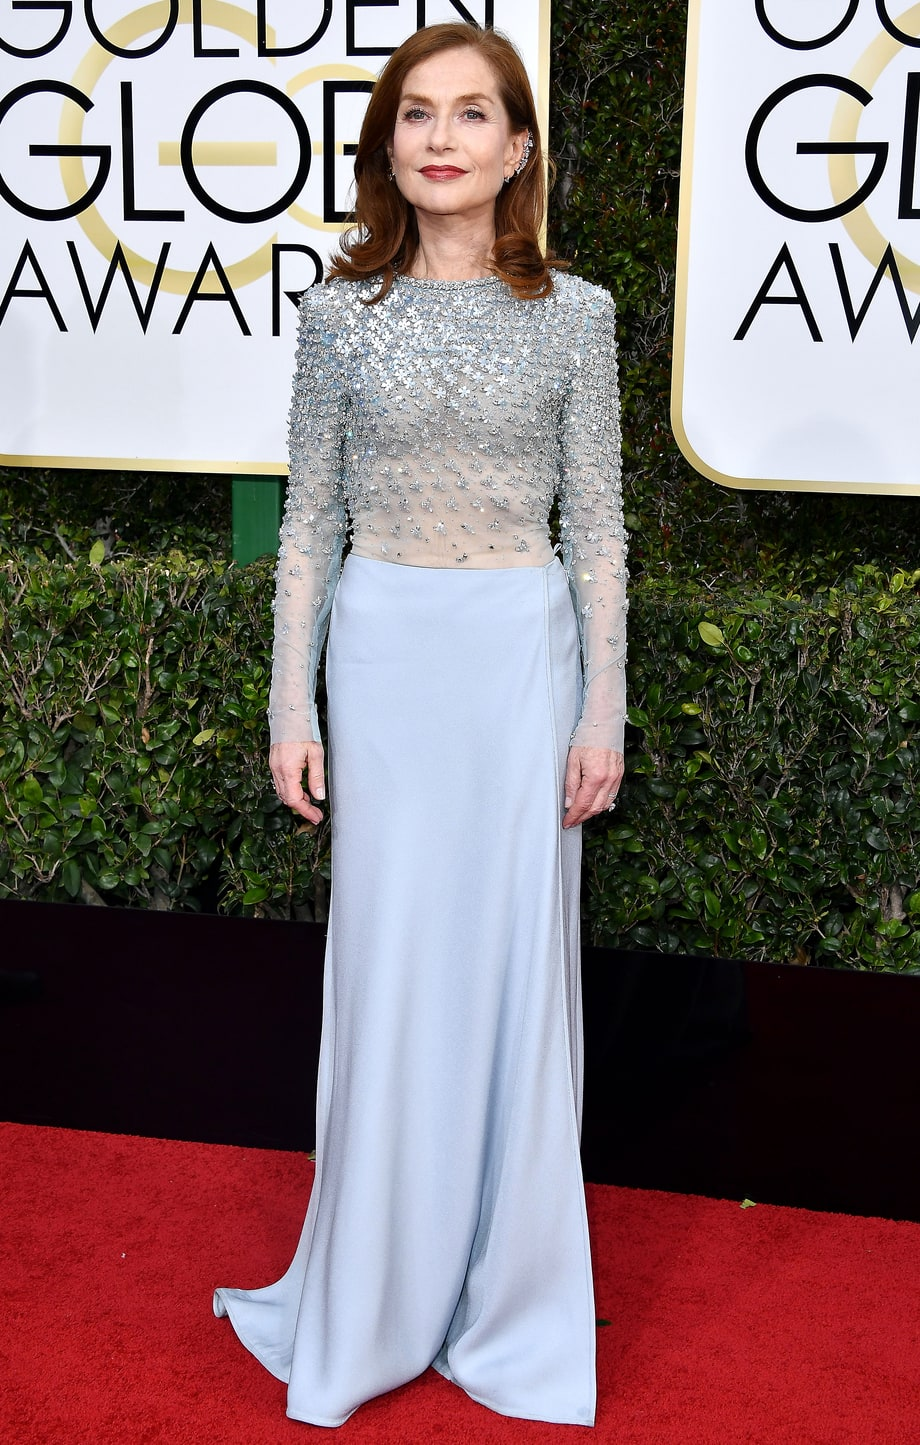 Isabelle Huppert in Caitriona Balfe (Photo Credit: Steve Gravitz / WireImage)